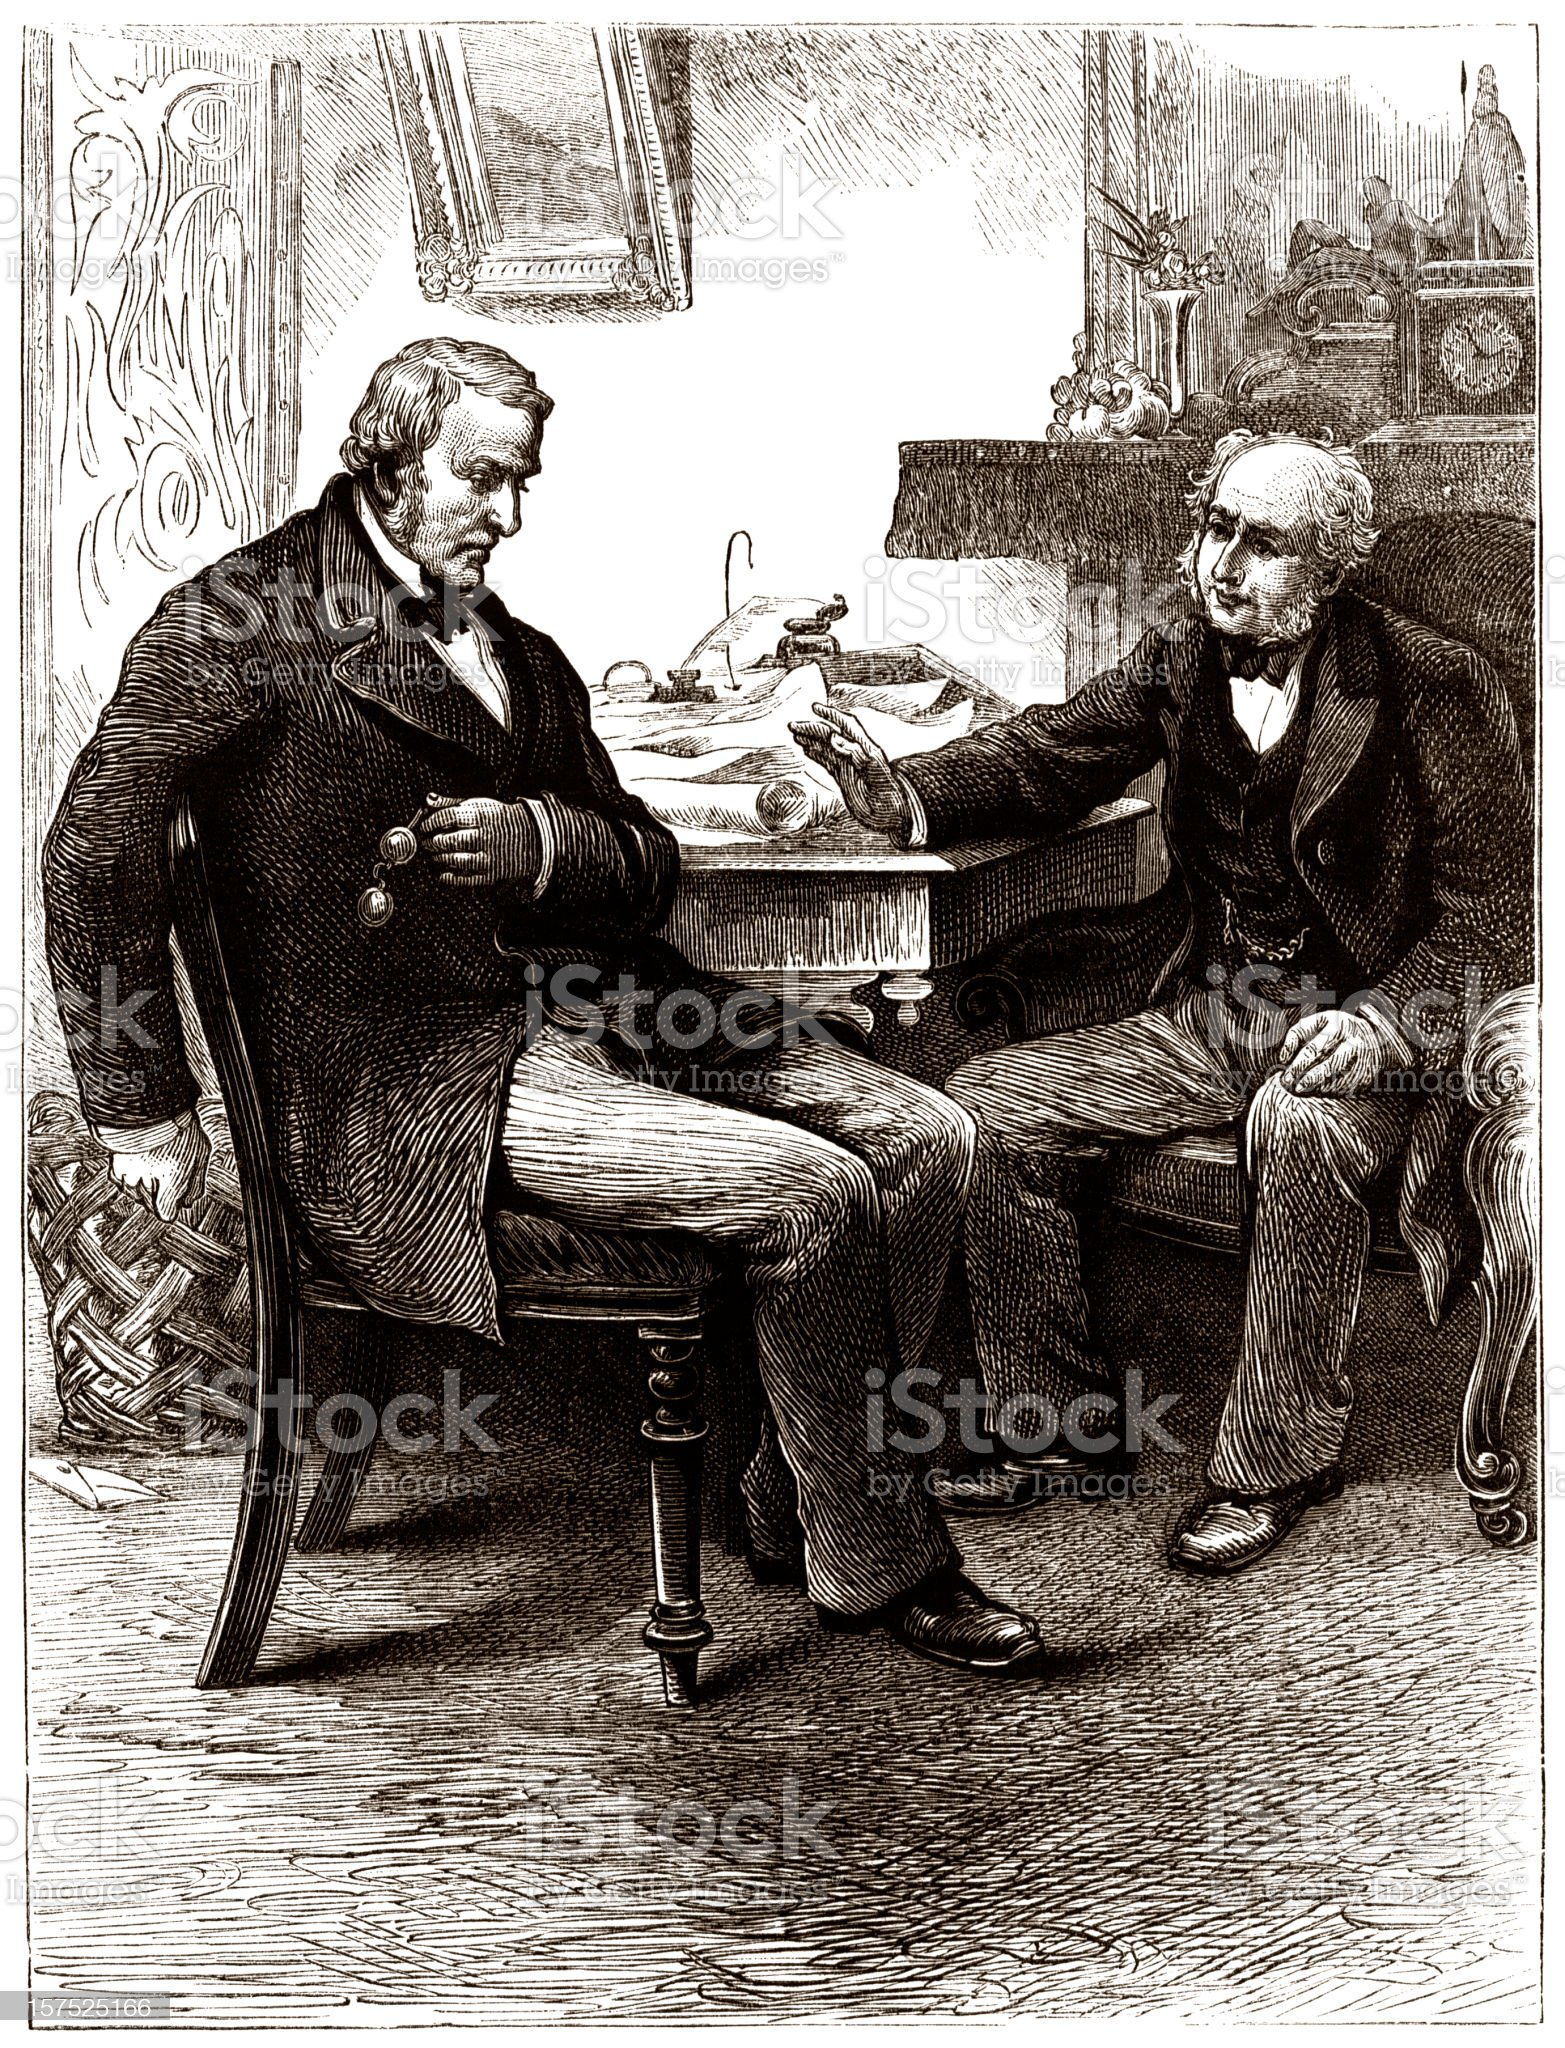 Two senior men discussing business - Victorian illustration royalty-free stock vector art